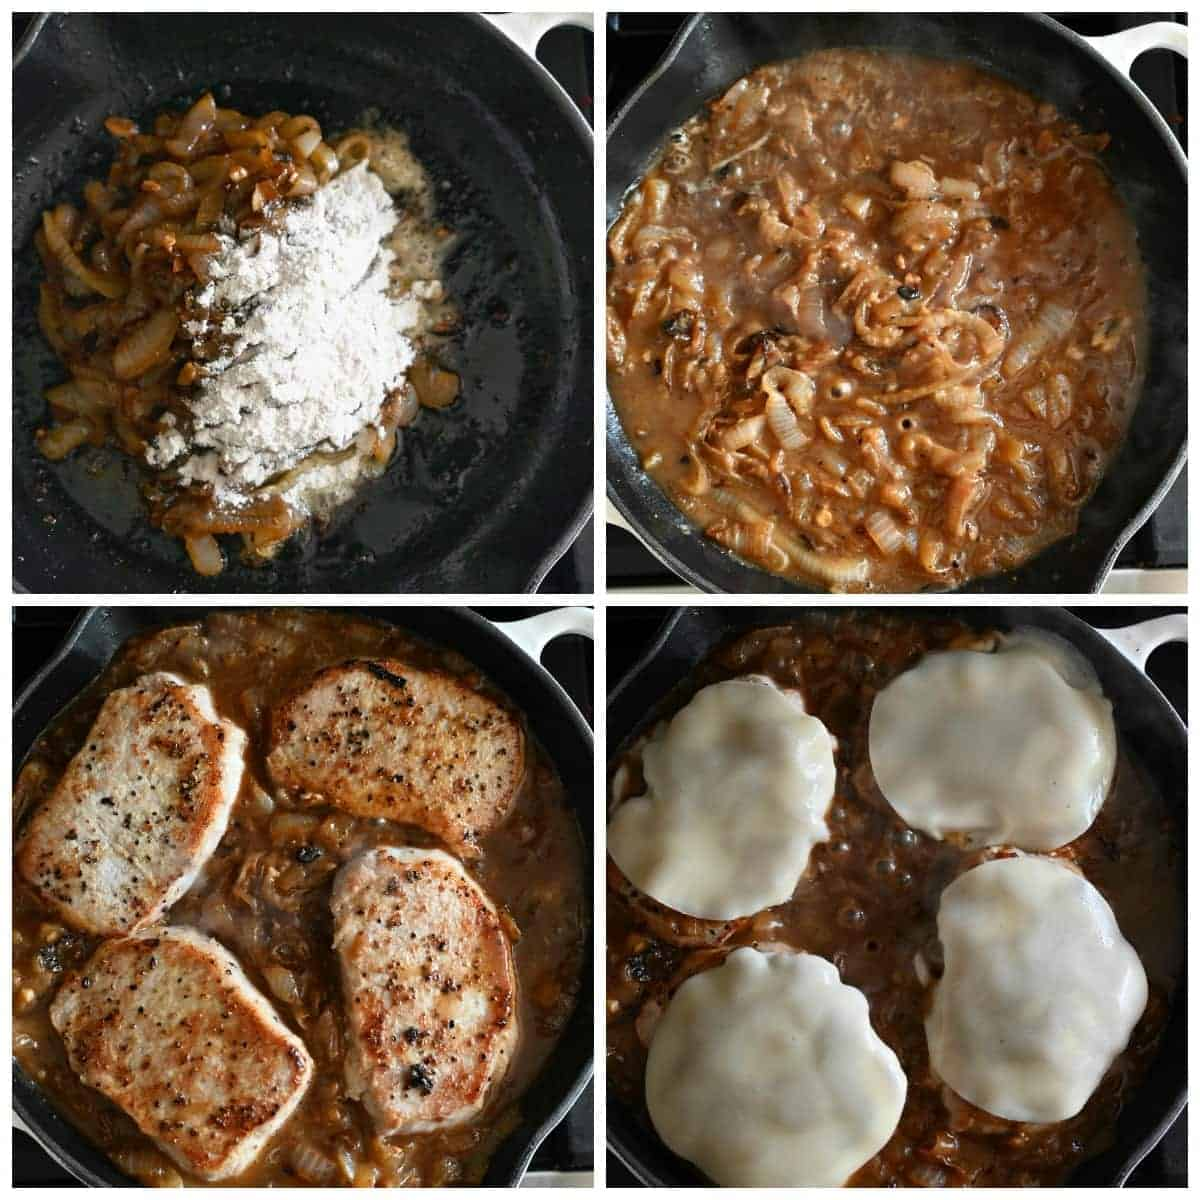 Four process photos. First one, caramelized onions in a cast iron pan with flour added. Second one, beef broth that has been whisked in to form the gravy. Third one, pork chops that have been added back into the gravy to finish cooking. Fourth one, slices of cheese that have been placed on top to melt before serving.